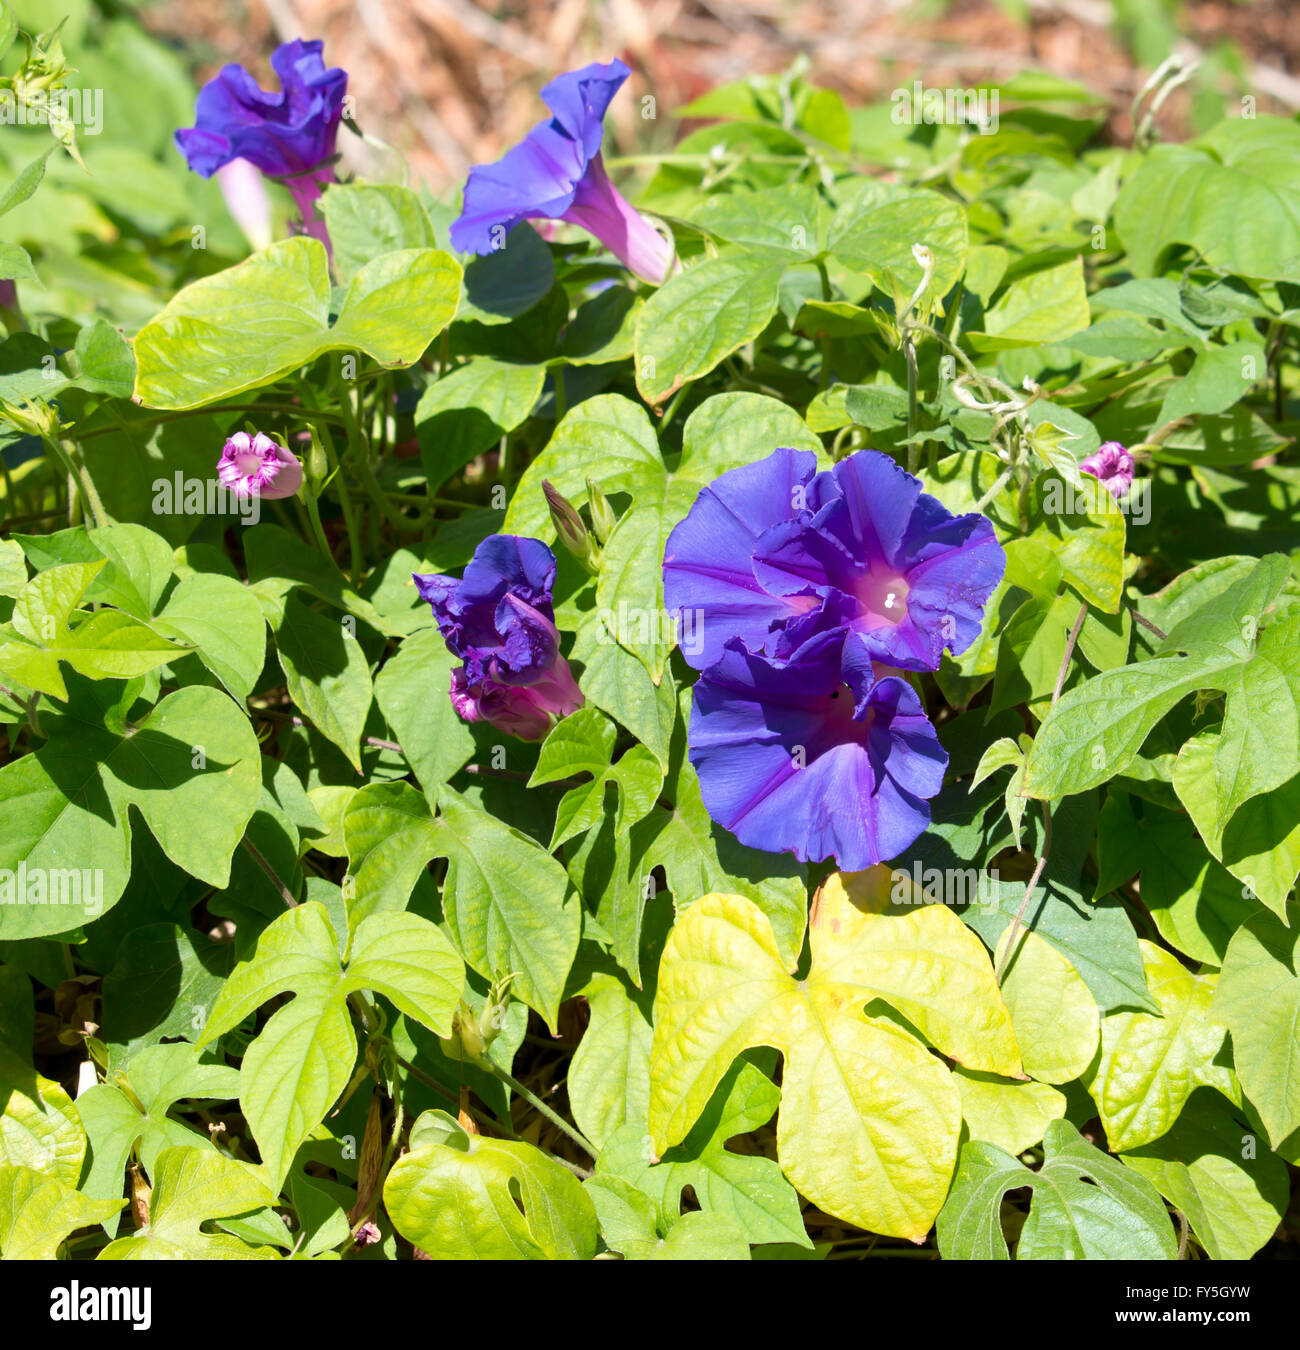 Creeper  Ipomoea purpurea,  Purple, Tall, or Common Morning Glory,  a species in the genus Ipomoea  with purple - Stock Image